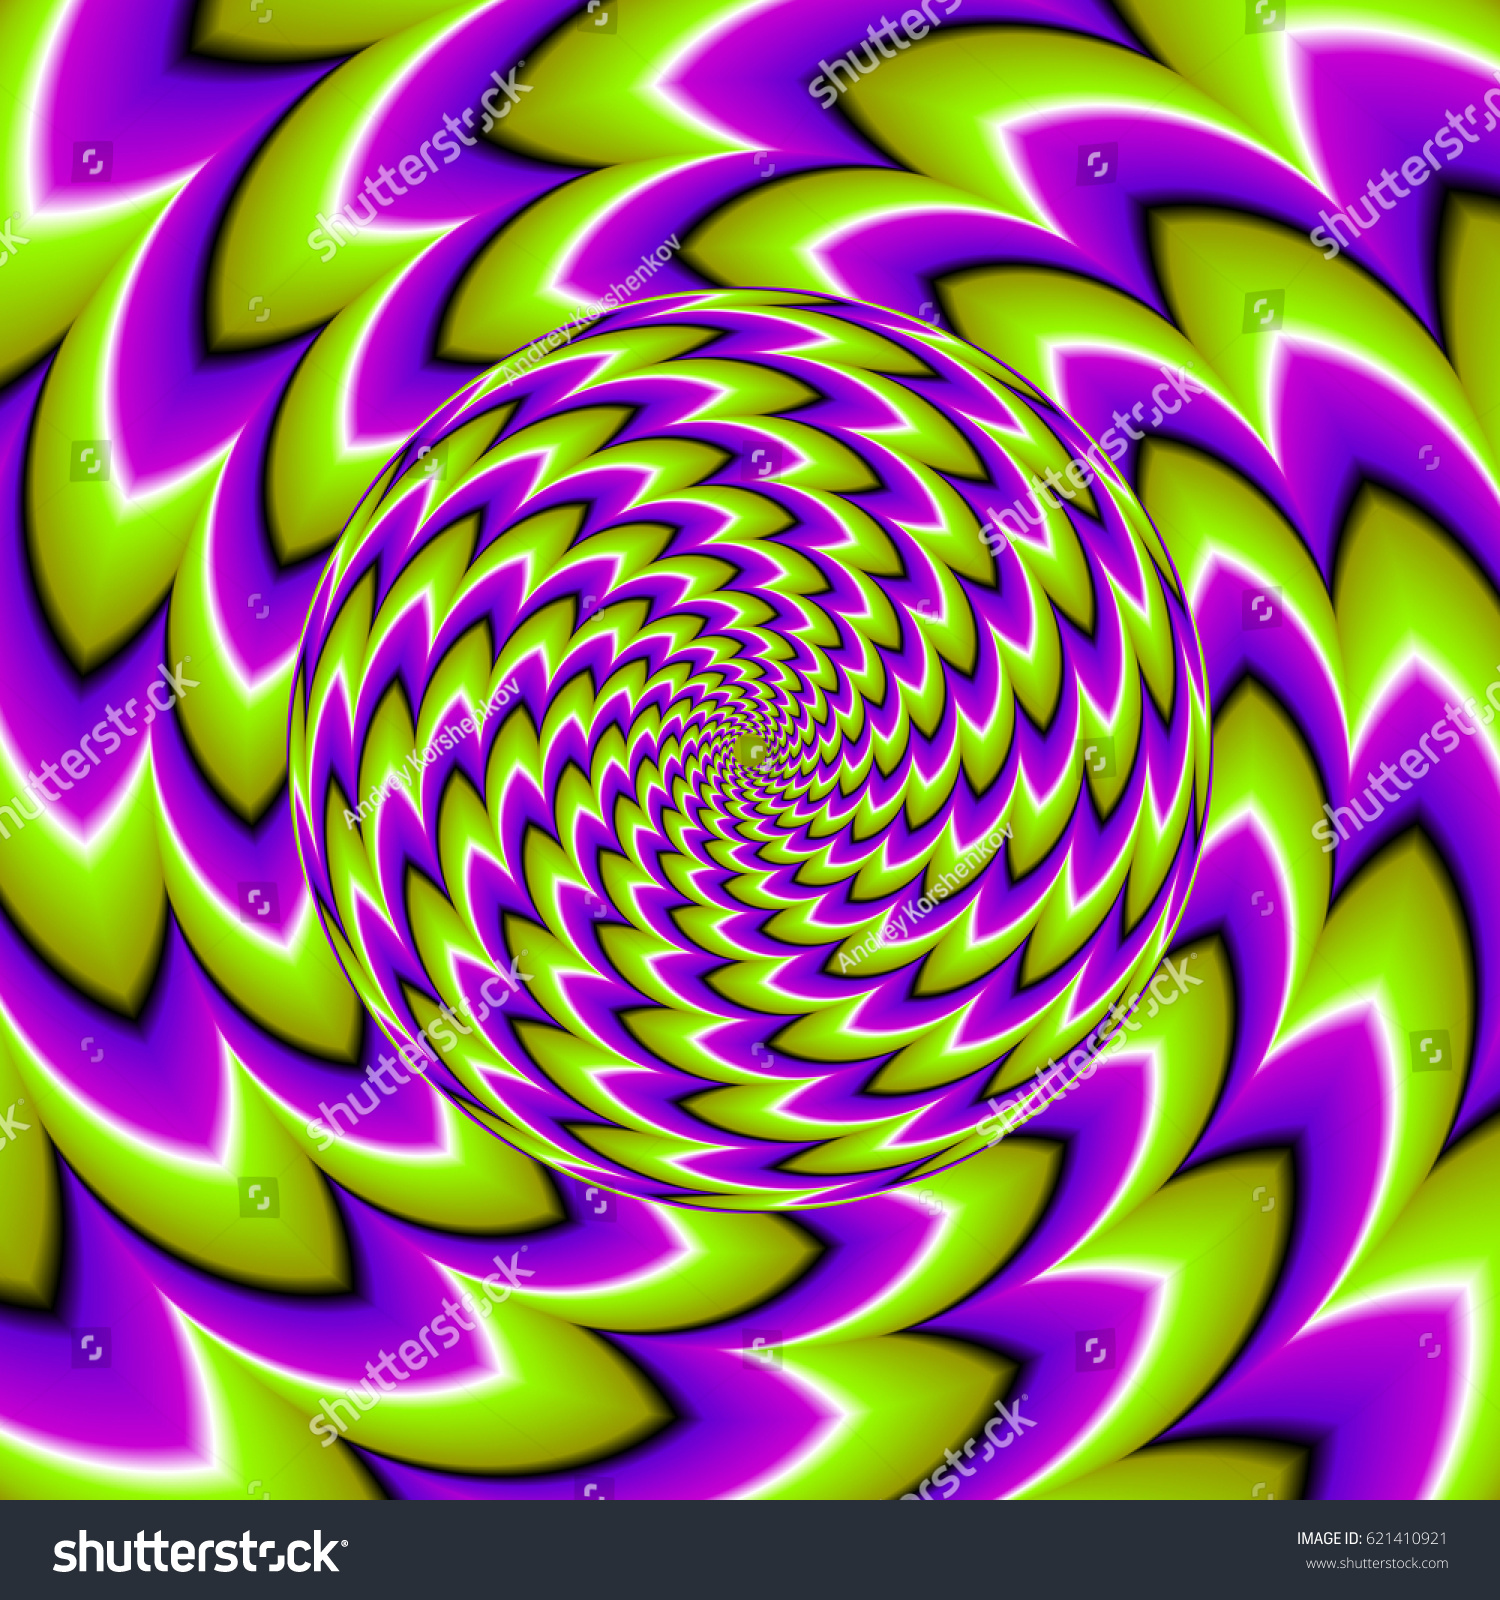 Swirling Spinning Purple Swirl Stock Vector - Illustration ... |Spinning Purple Background